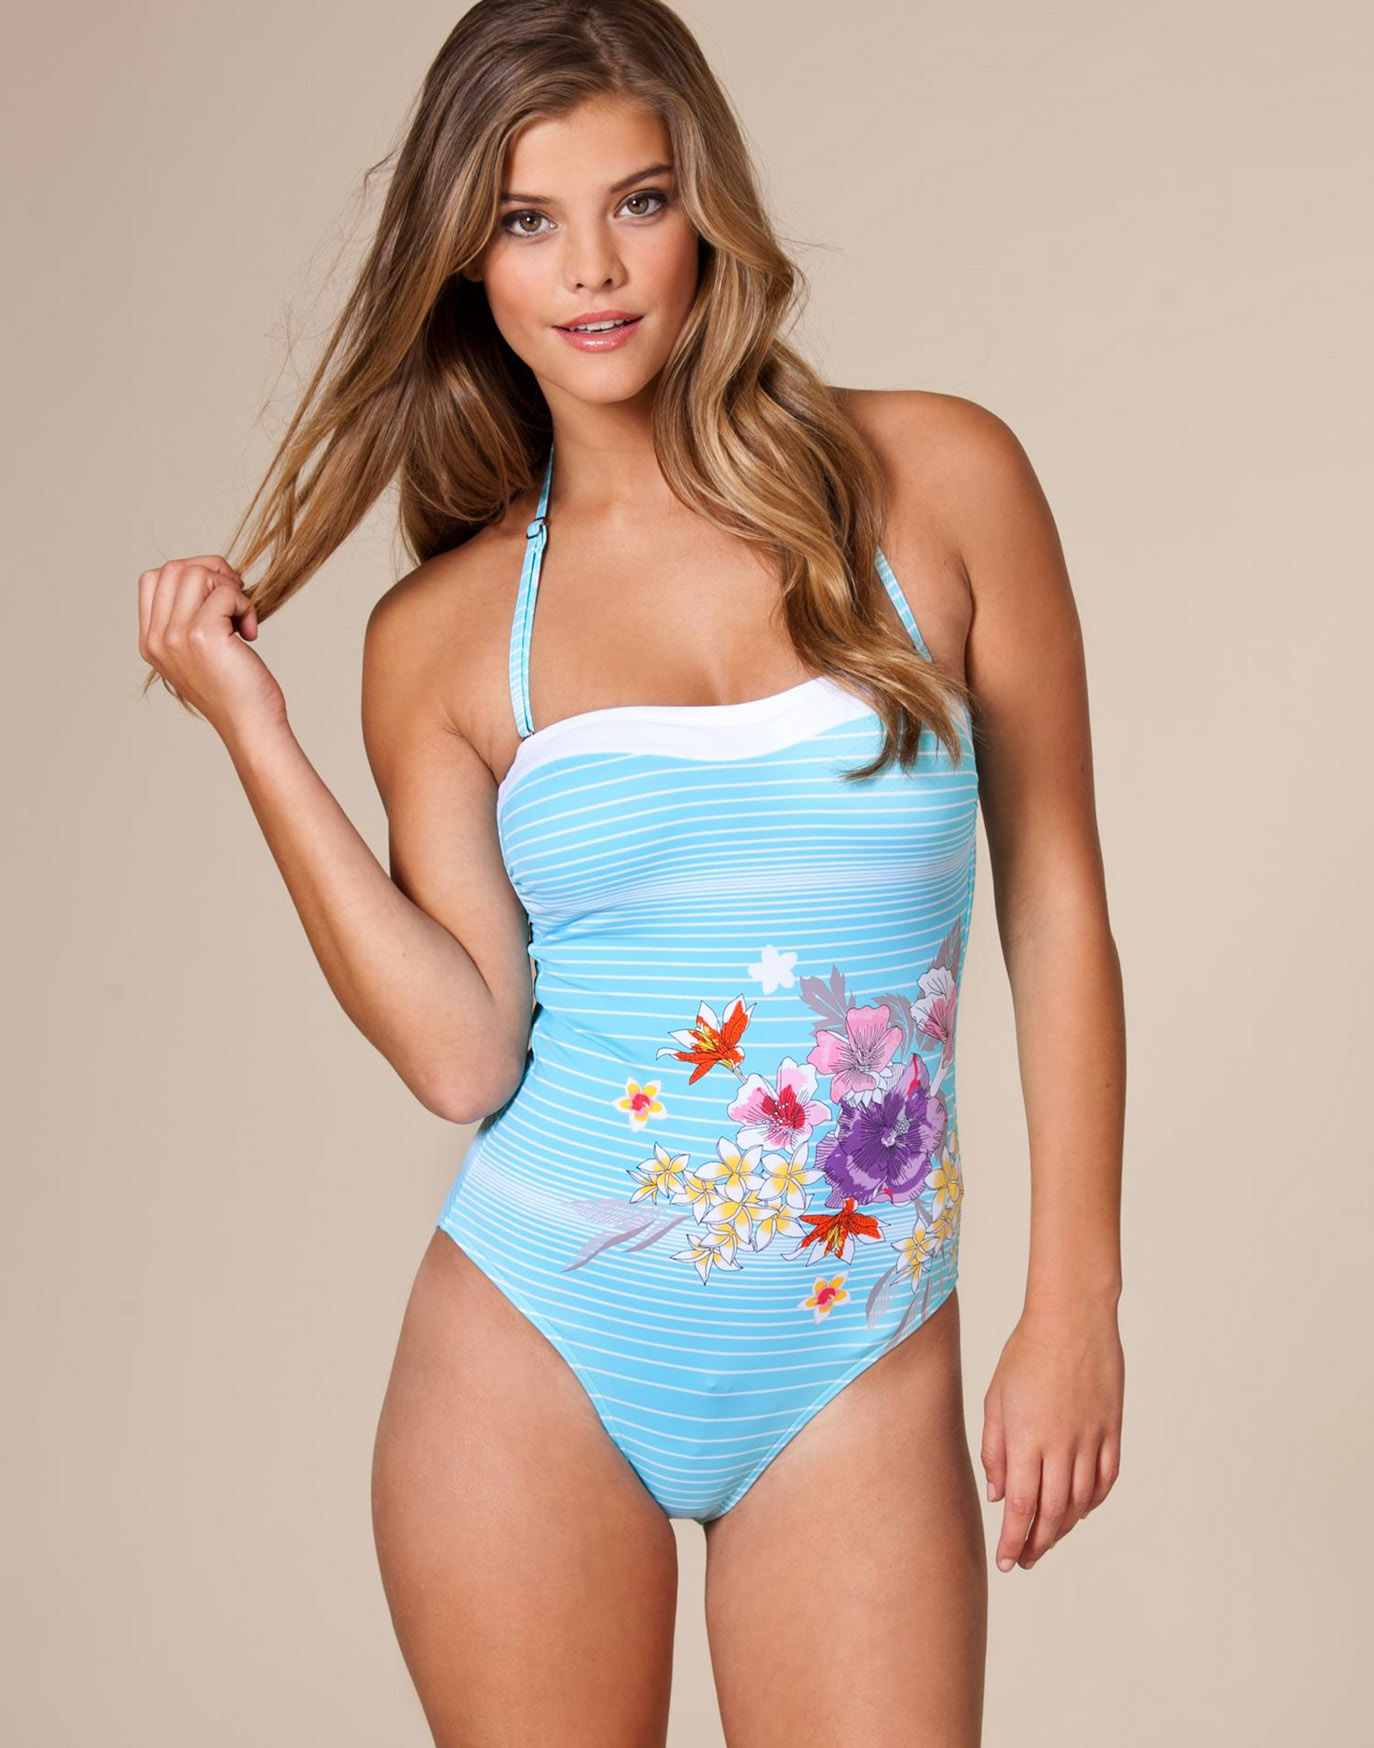 Fashion and models blog nina agdal swimsuit from nelly